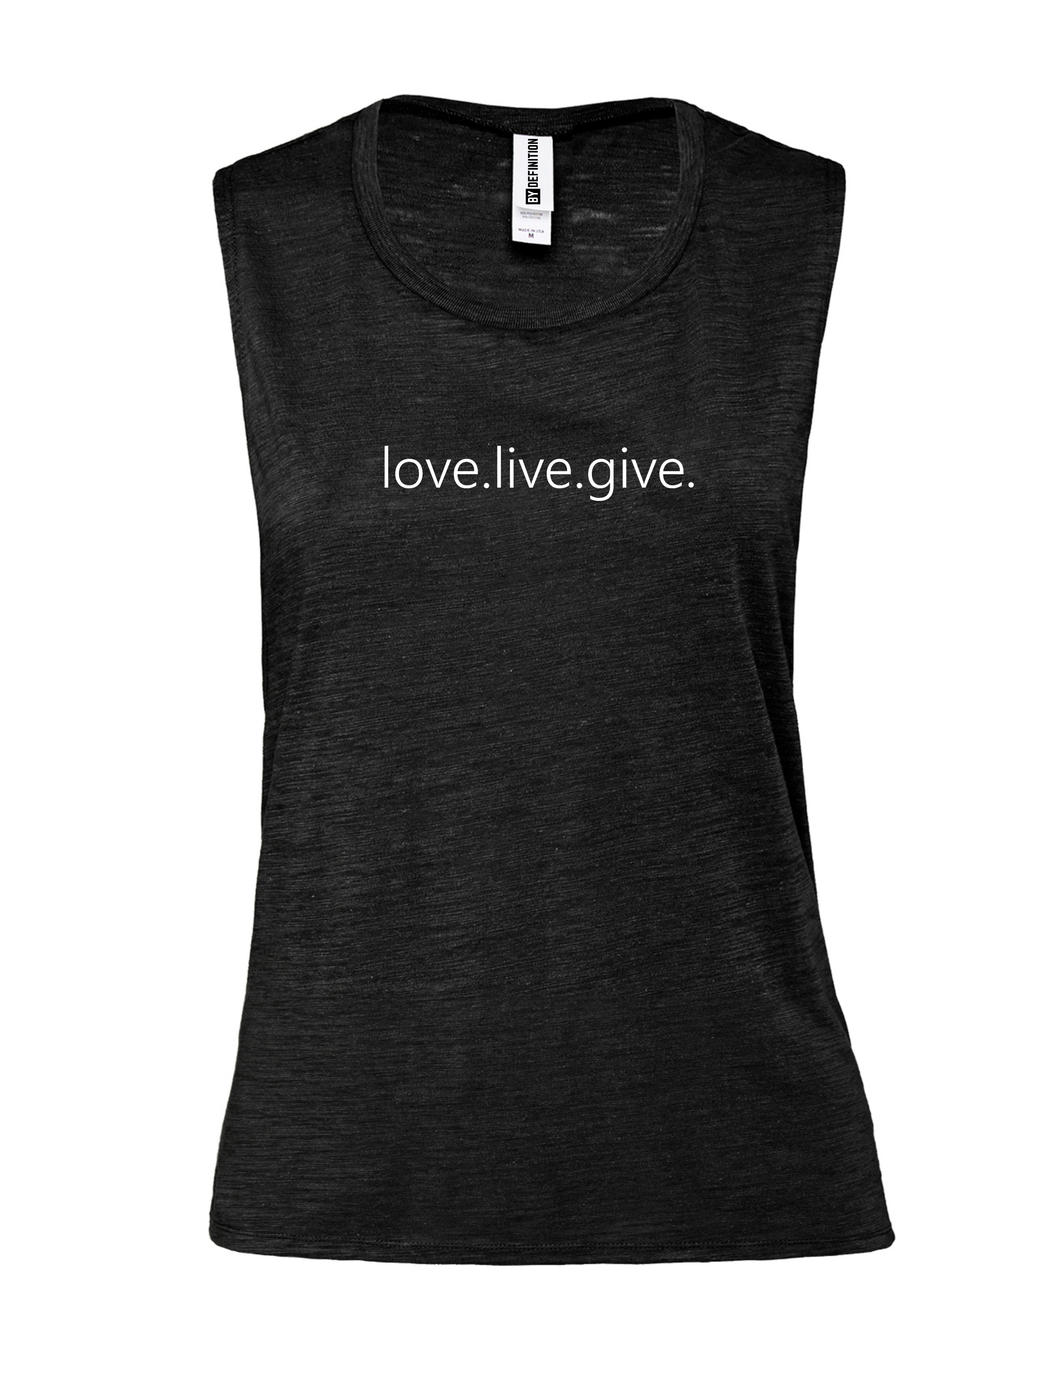 love.live.give  Muscle